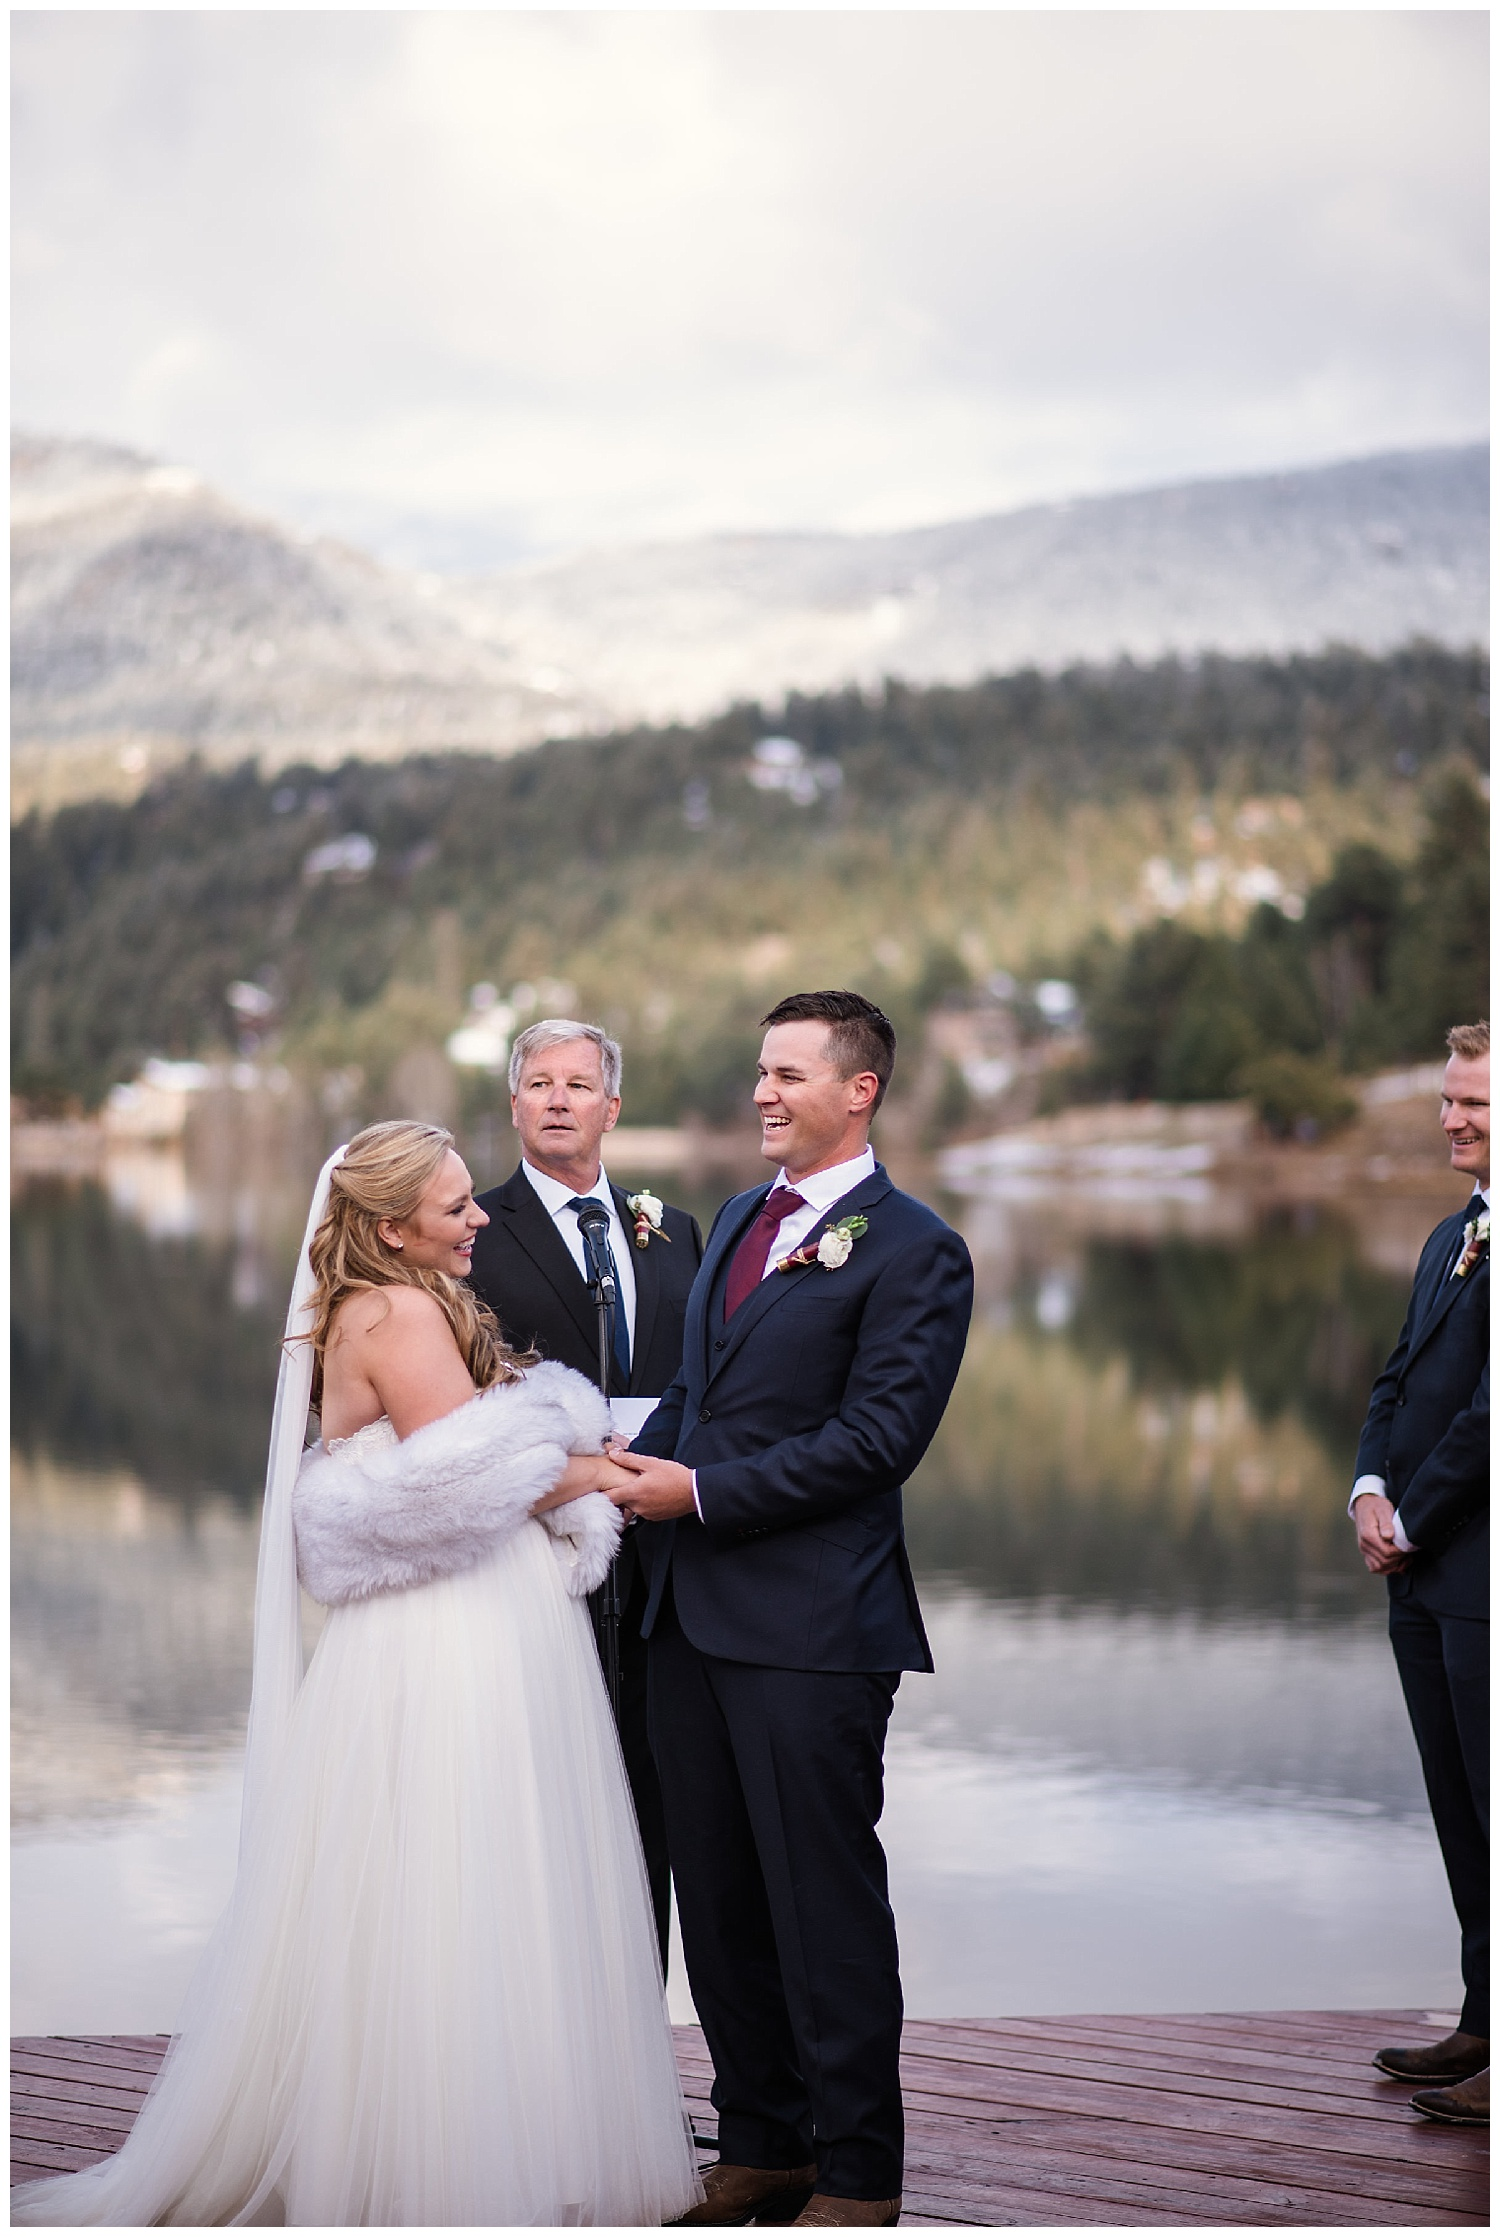 Evergreen Lake House Wedding, Military wedding, Colorado Wedding Photographer, Denver Wedding Photographer, Intimate Colorado Wedding Photographer, Small Colorado Wedding Photographer, colorado mountain wedding photographer, evergreen wedding photographer,